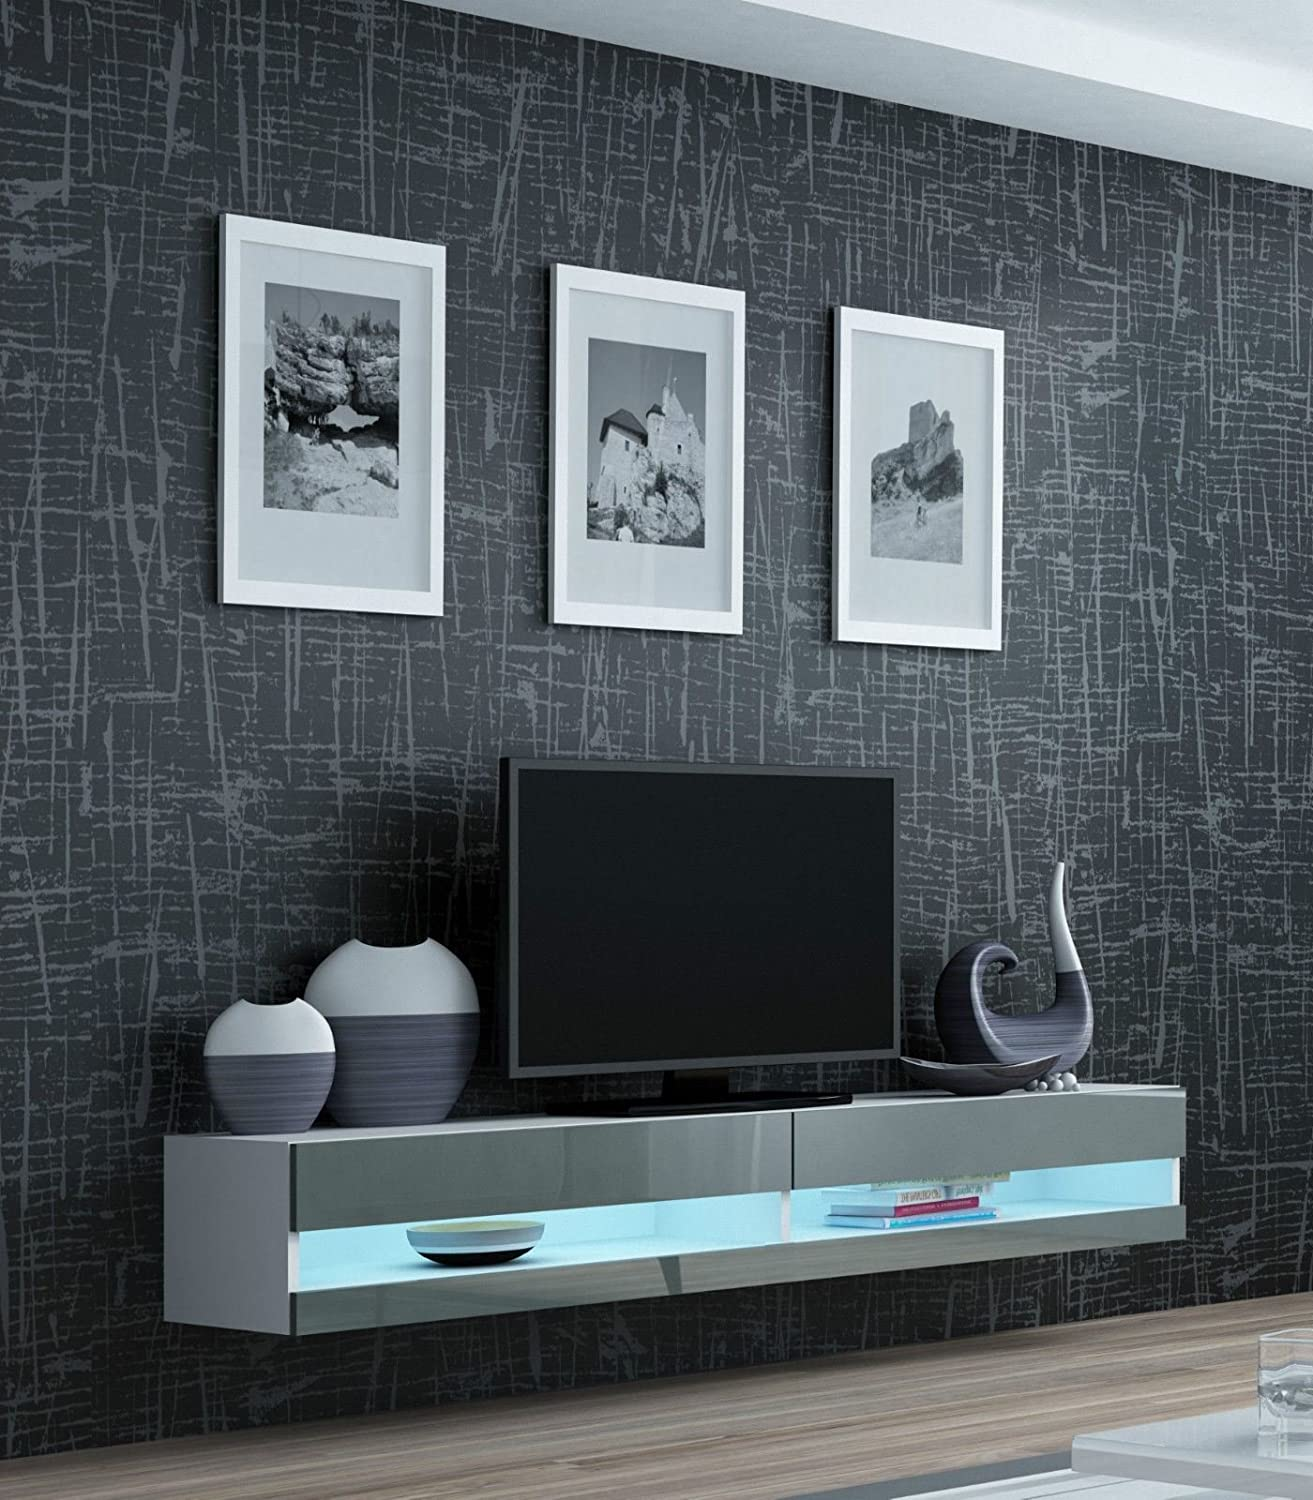 Tv Stand Wall Mounted Cabinet High Gloss Living Room Set With Led Lights Modern Display Units